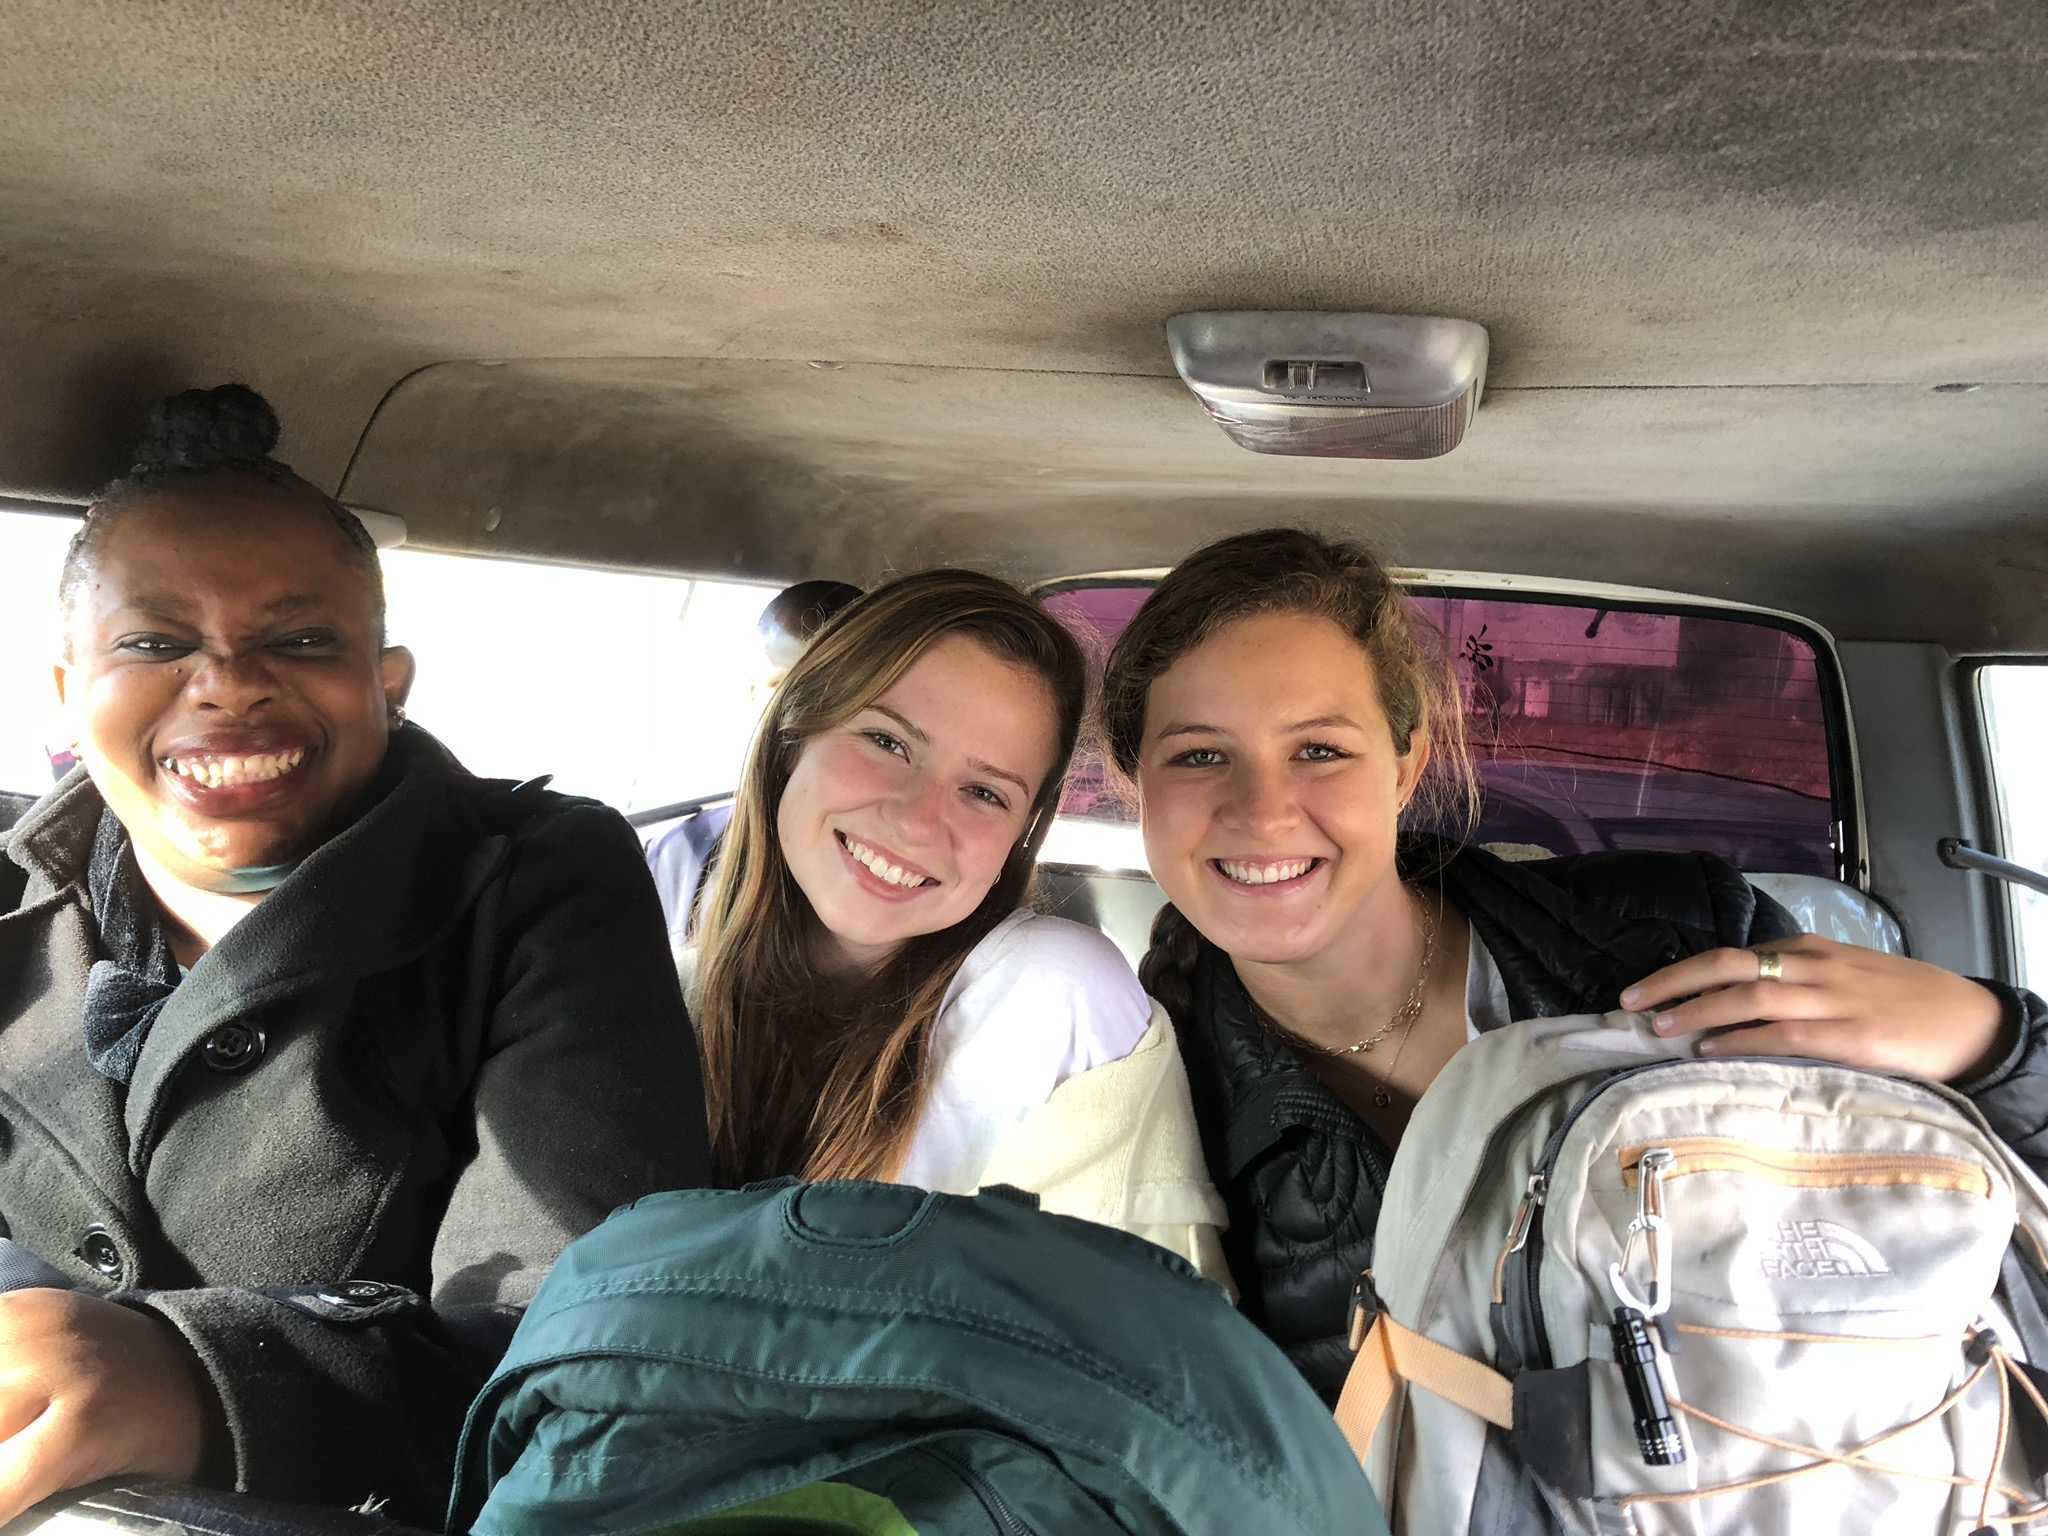 Lucy (CSO), Katherine, and Maryellen in a minibus on their way to Arise Christian School